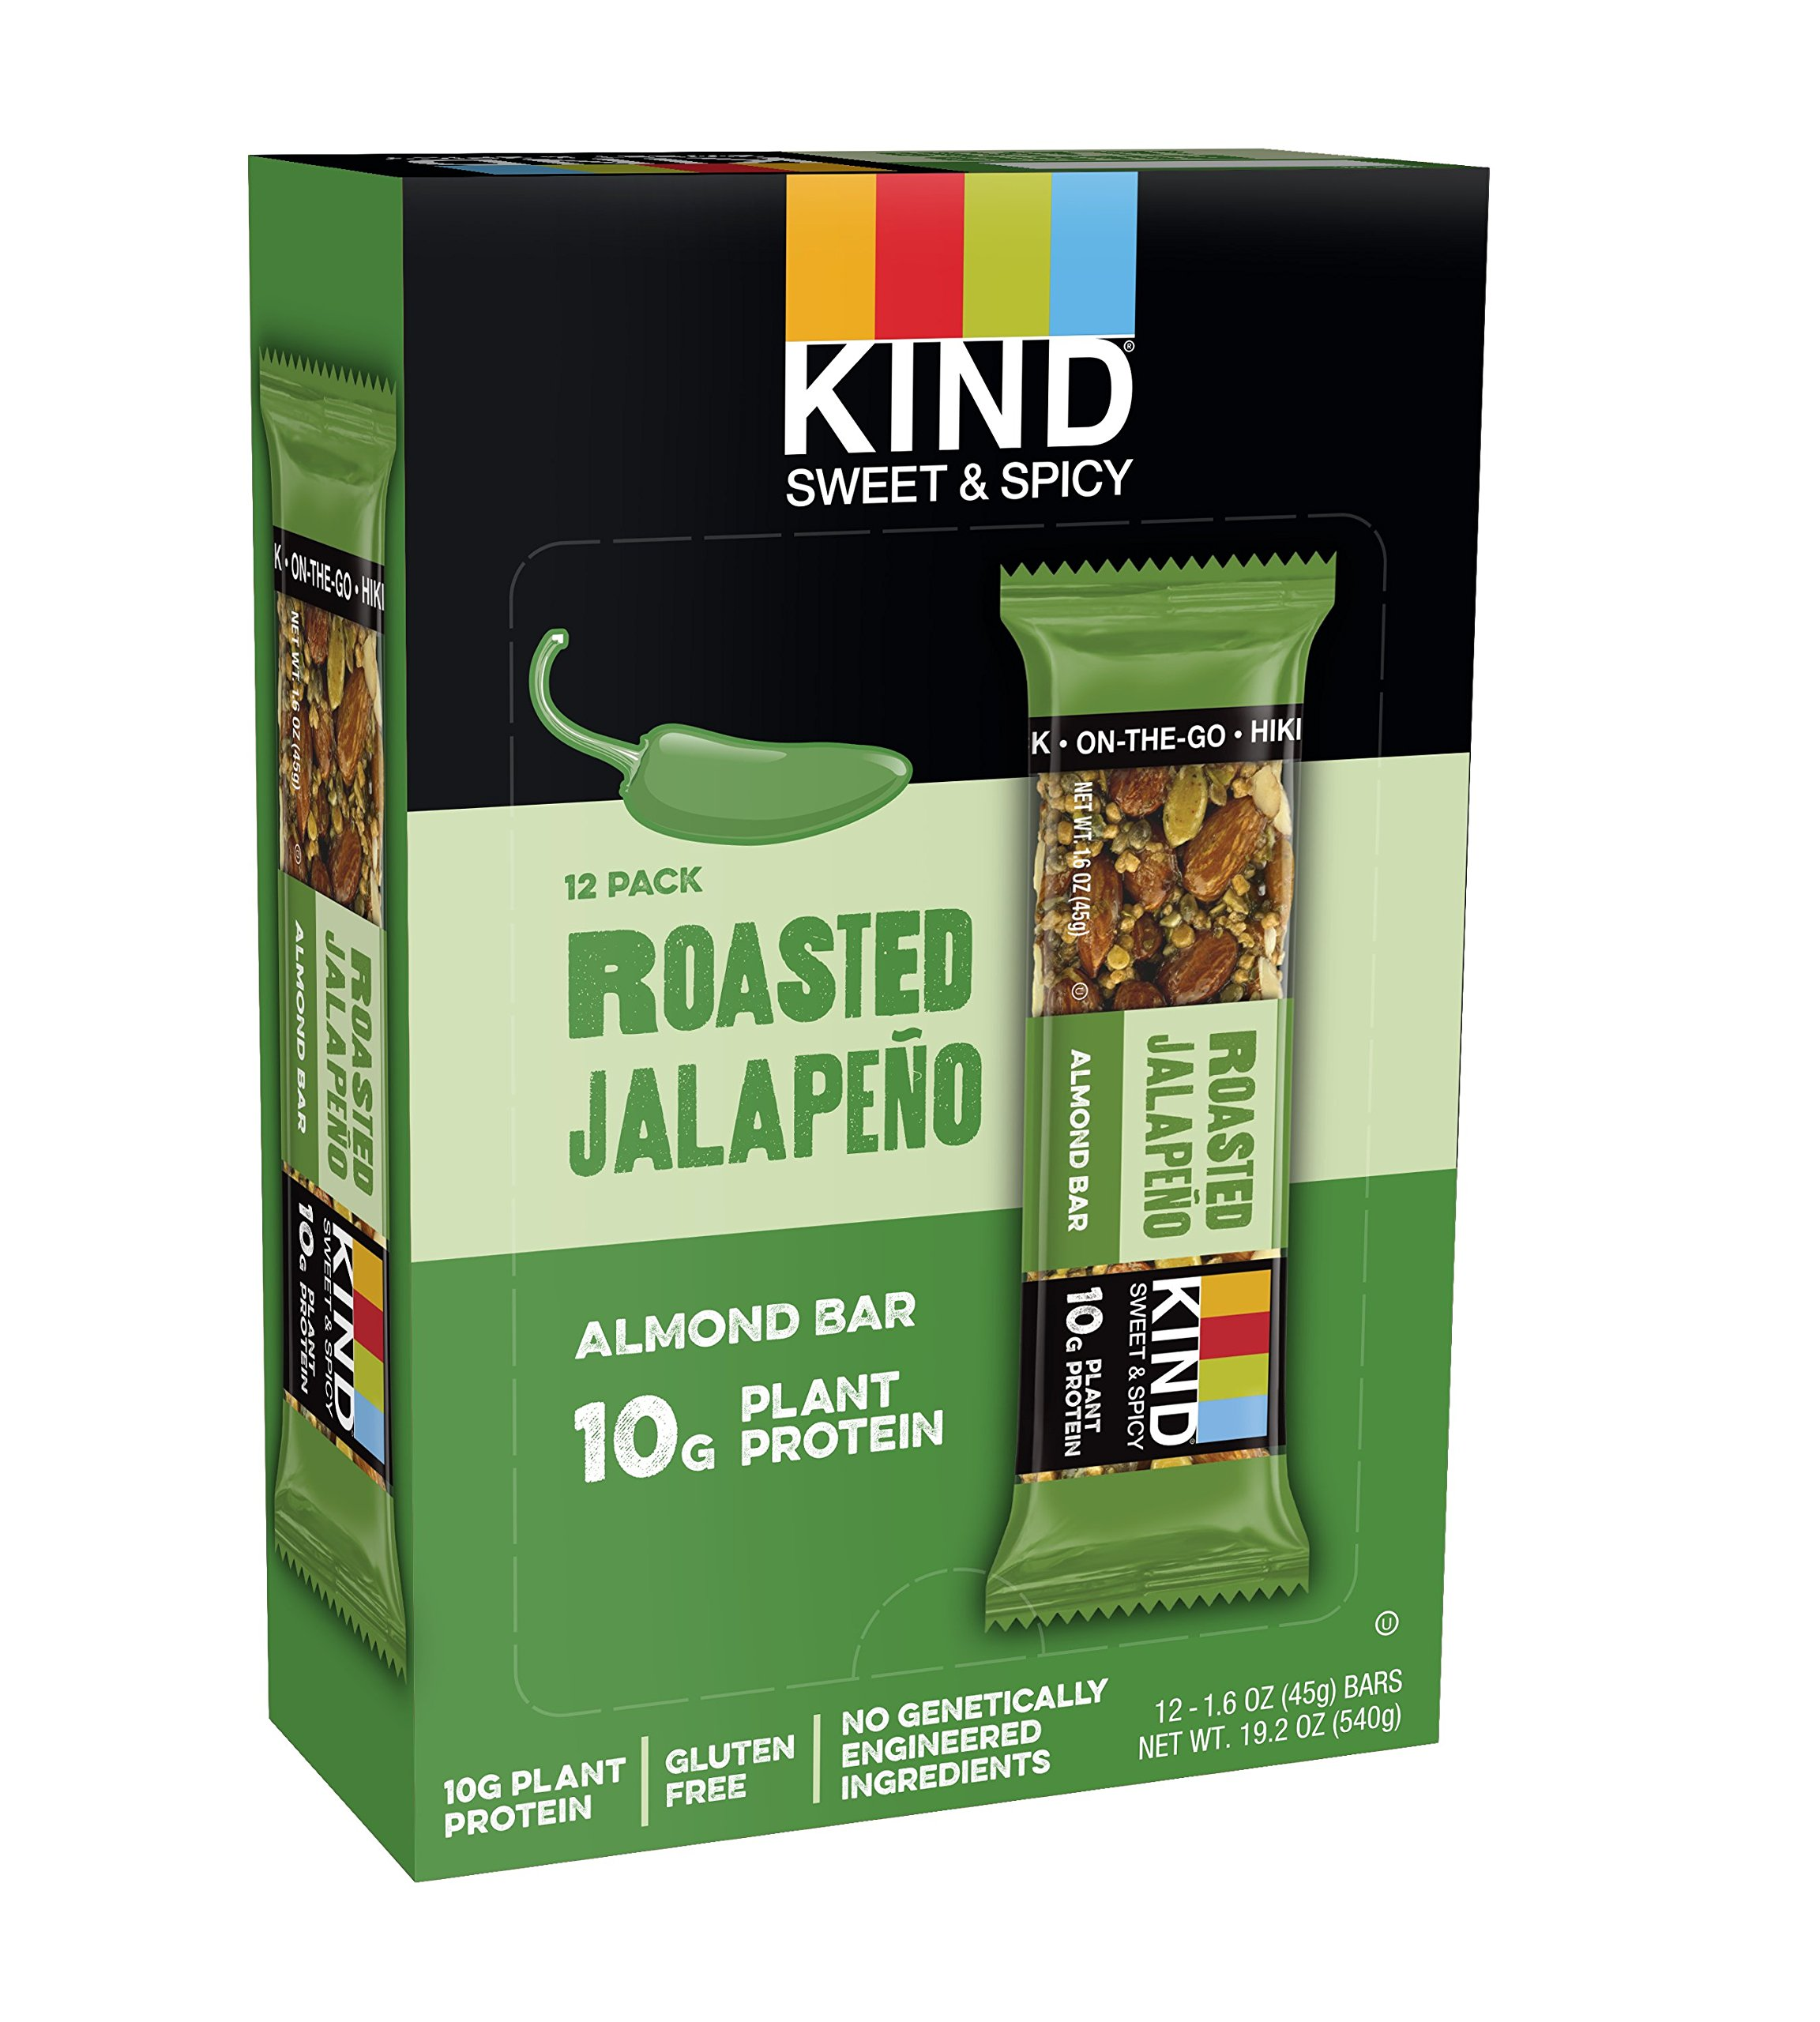 KIND Sweet and Spicy Bars, Roasted Jalapeno, Gluten Free, 10g Plant Protein, 1.6oz, 12 Count by KIND